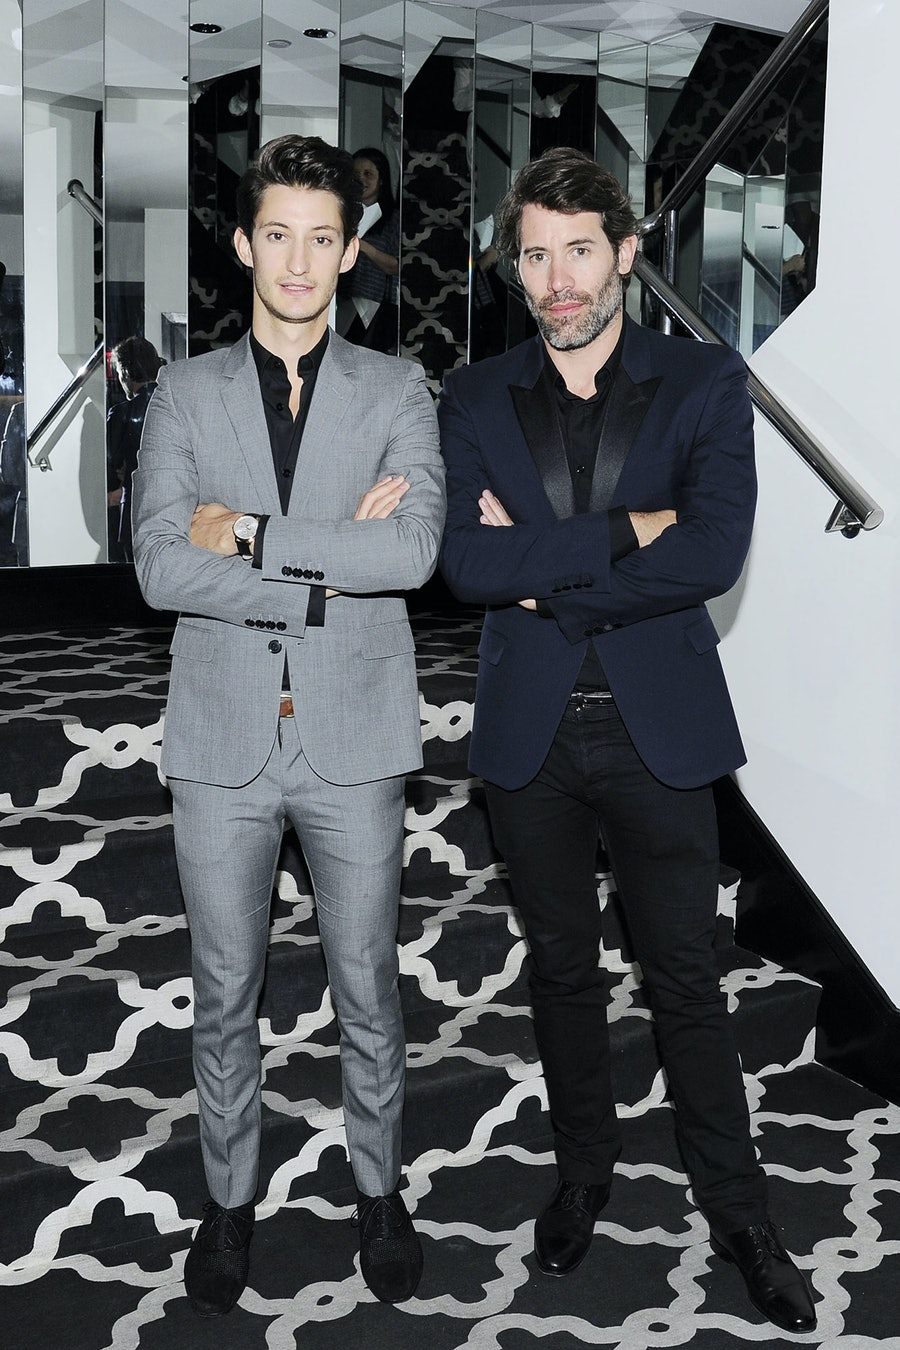 Pierre Niney and Jalil Lespert